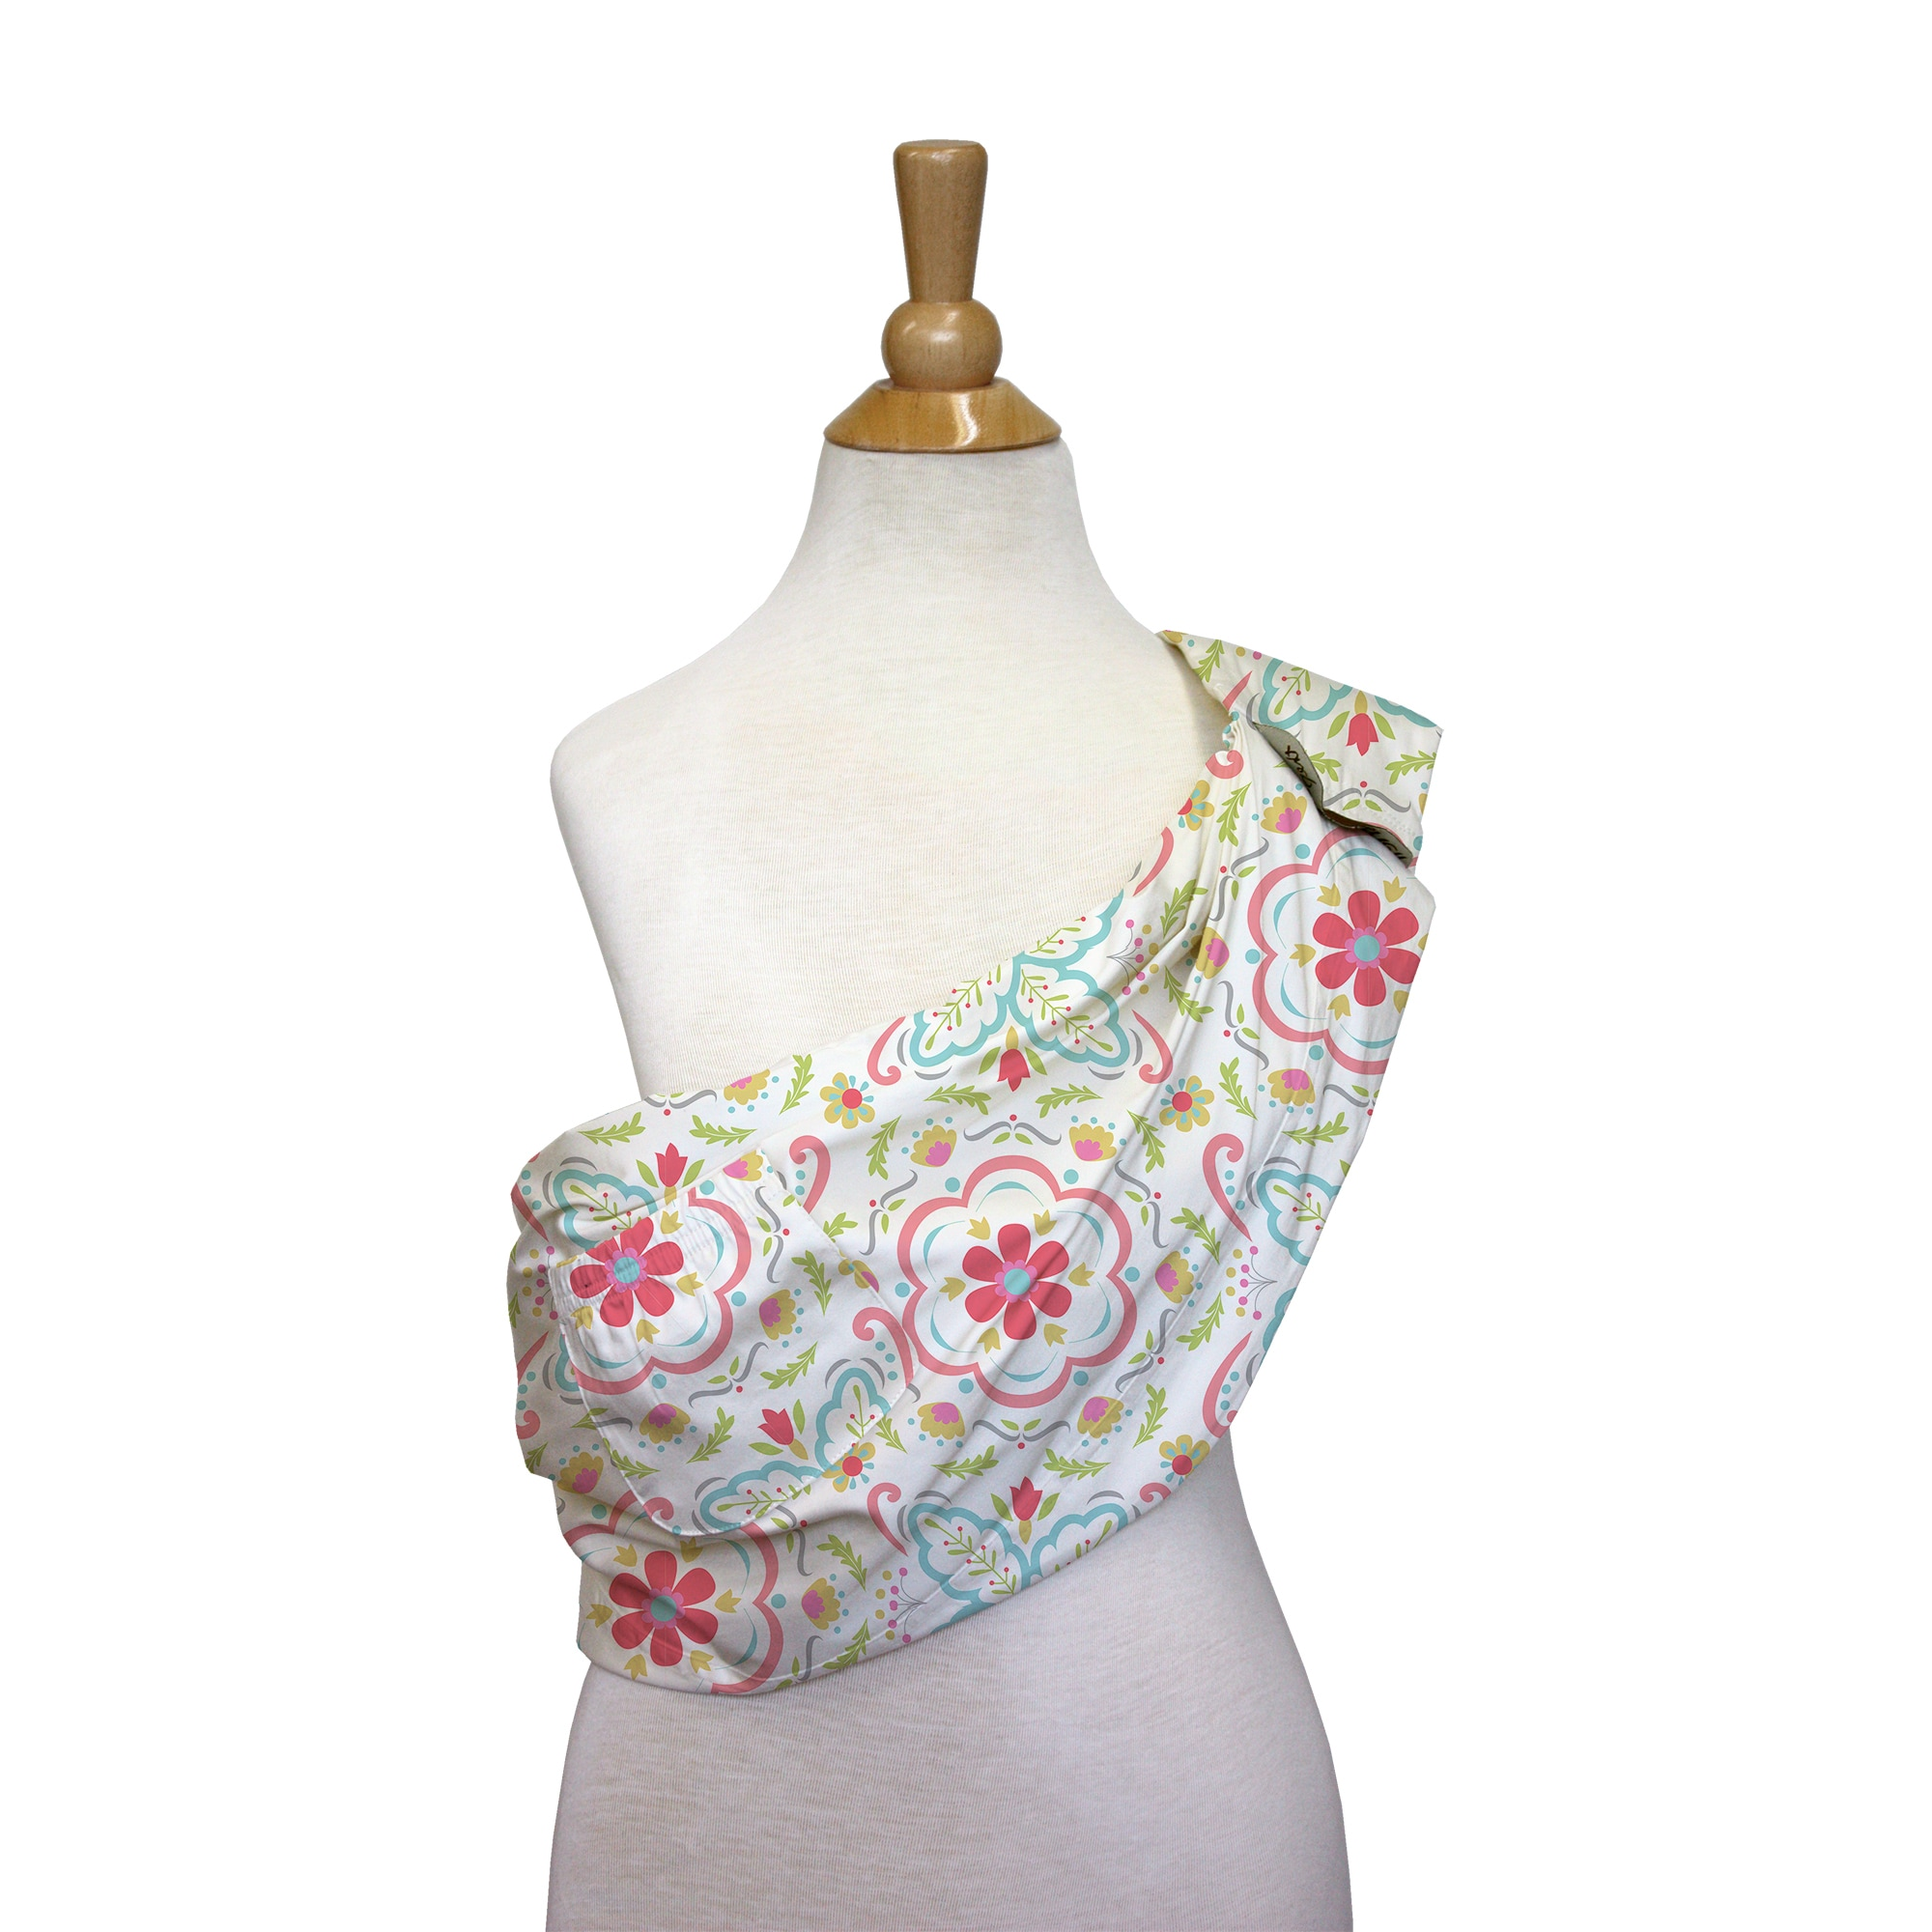 The Peanut Shell  Cotton Adjustable Sling in Mila Print